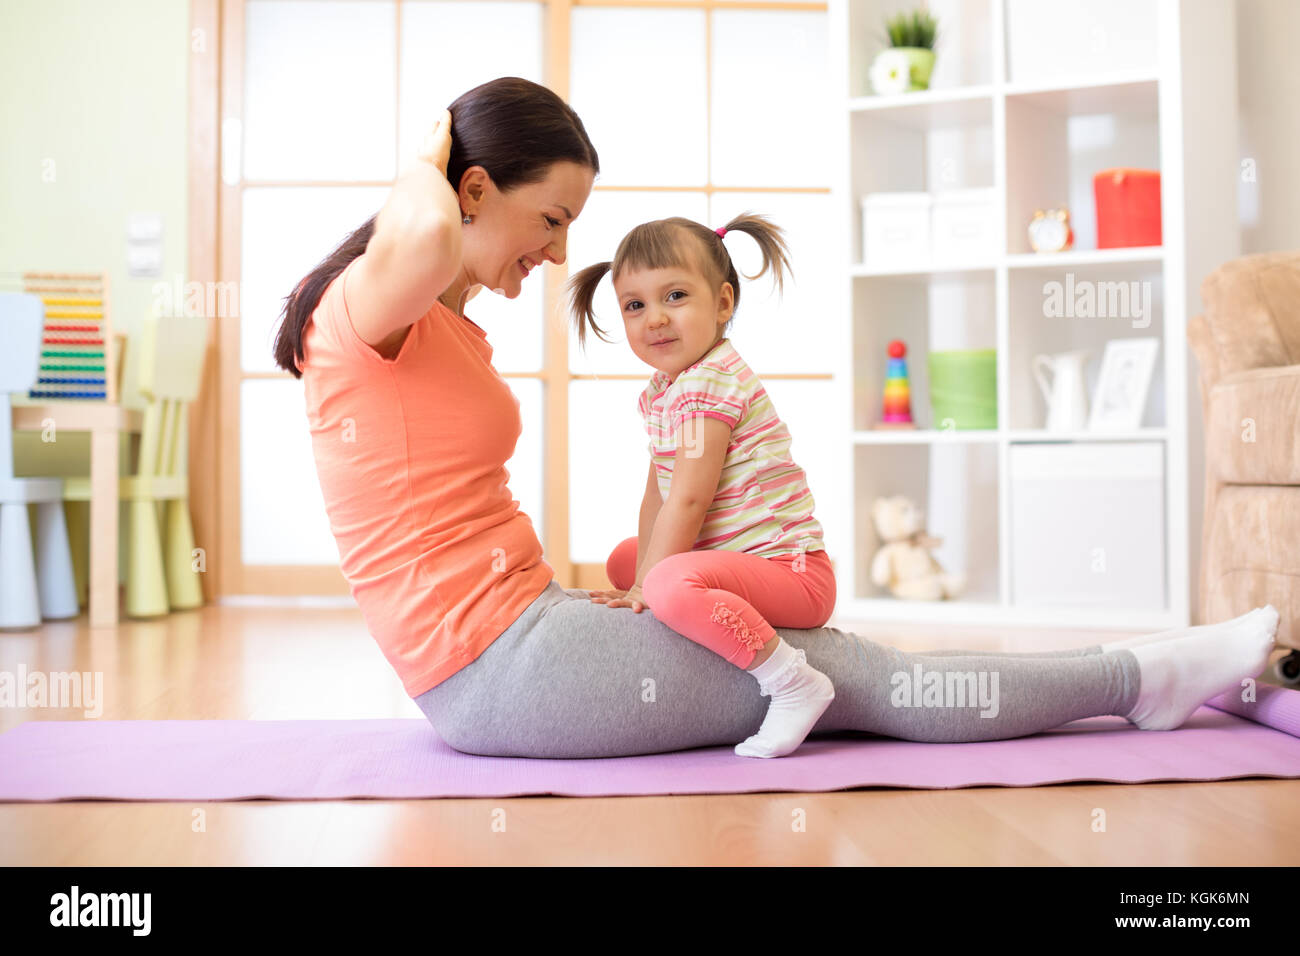 Mother and child daughter are engaged in fitness, yoga, exercise at home. Kid and woman swing press on stomach. - Stock Image